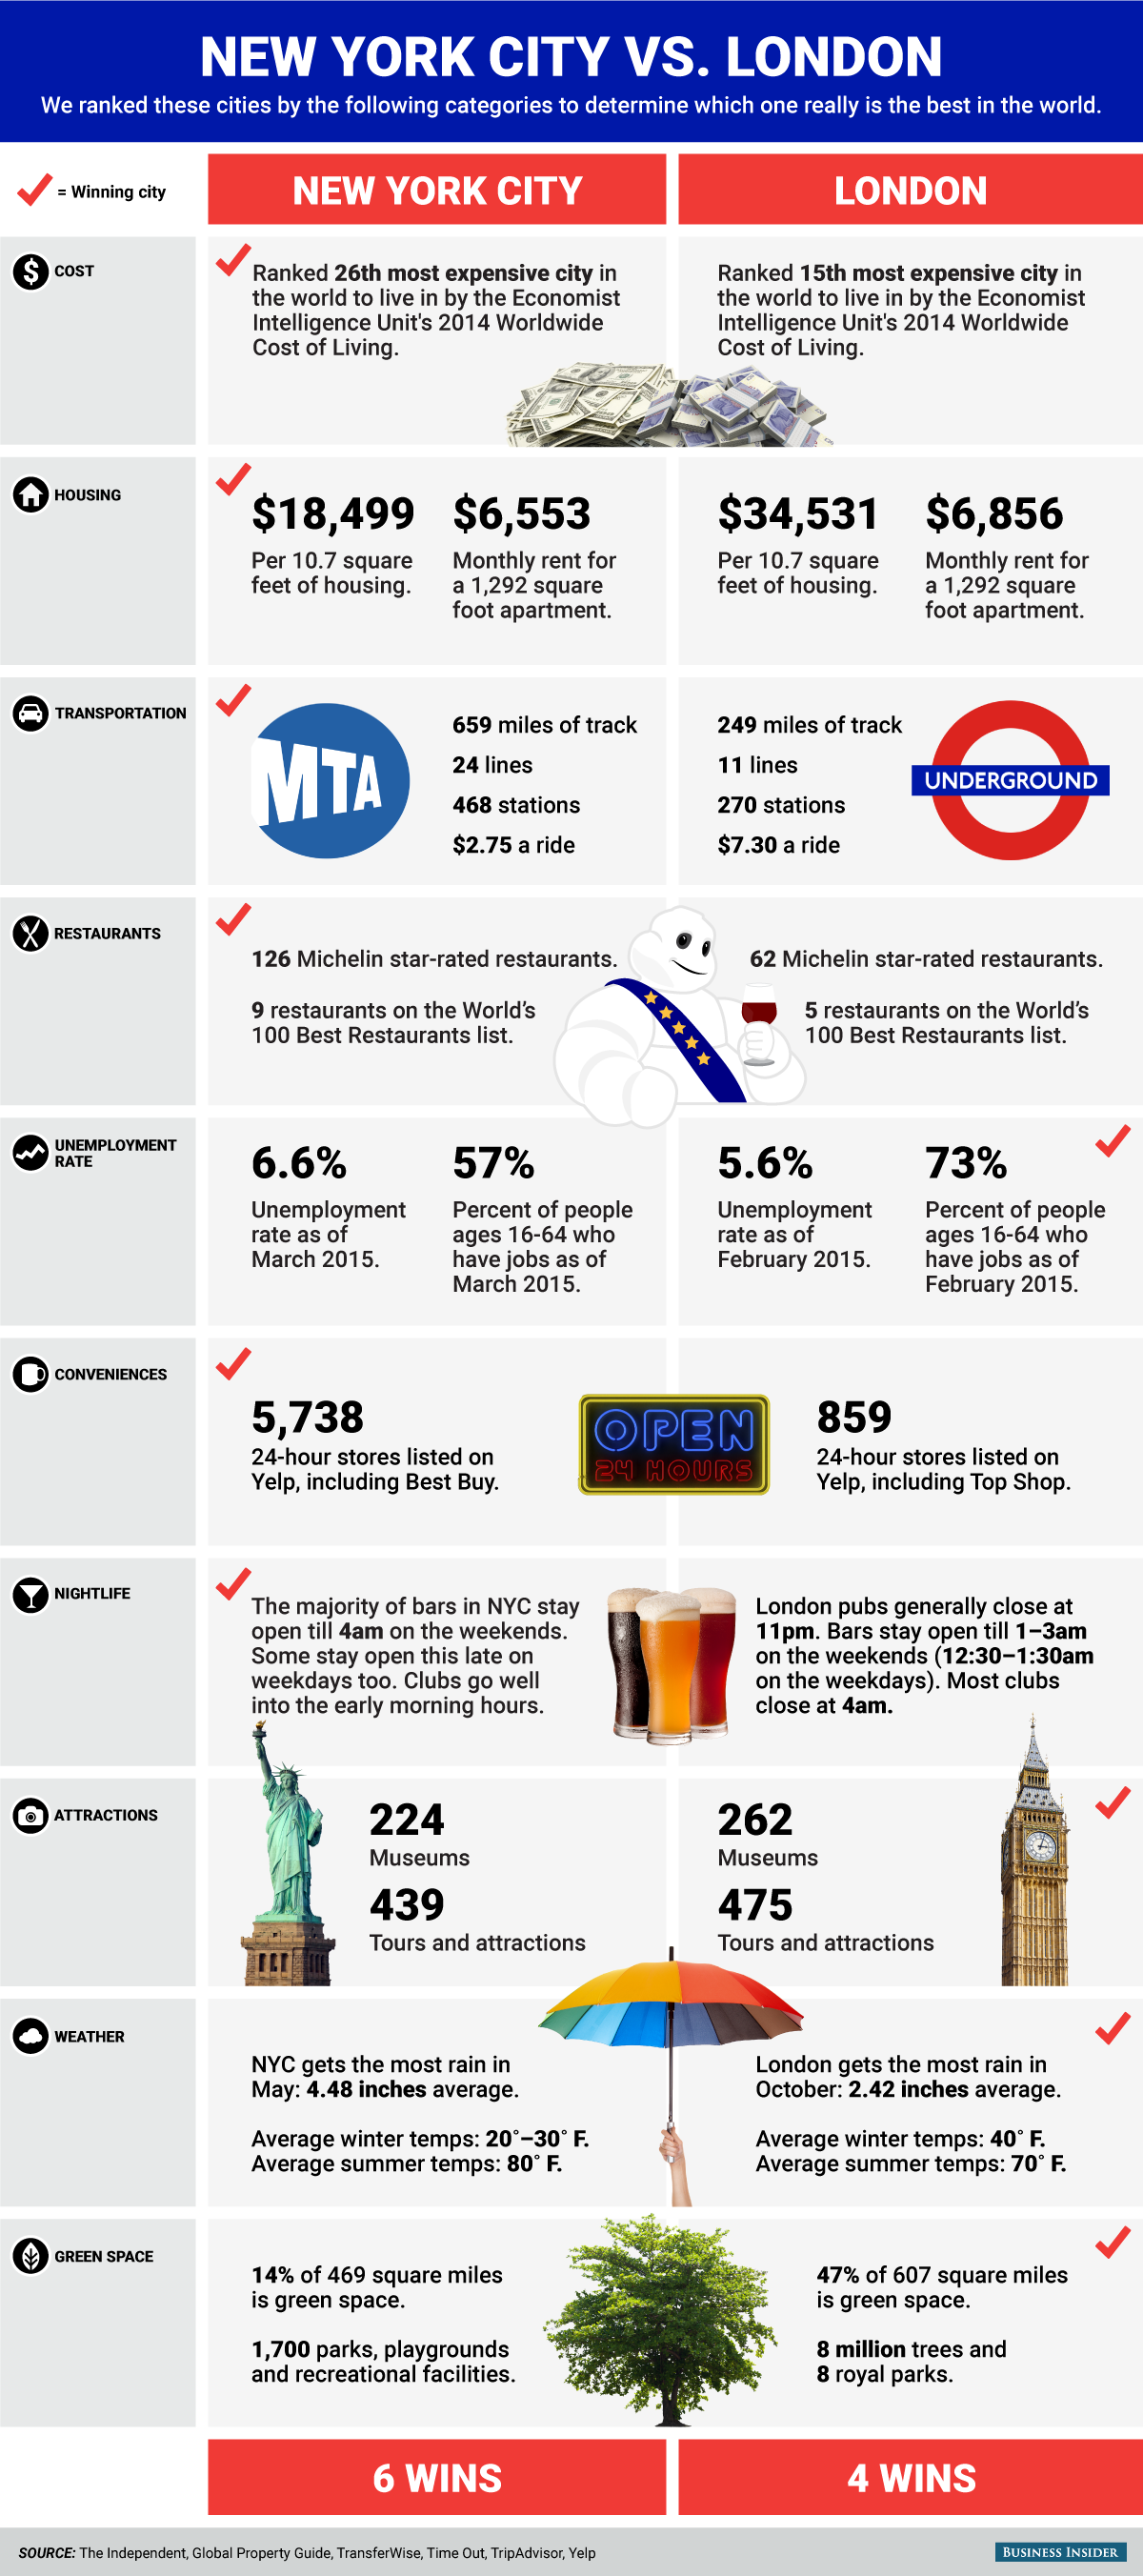 NEW YORK CITY VS. LONDON: Which is Really the best city in the world?